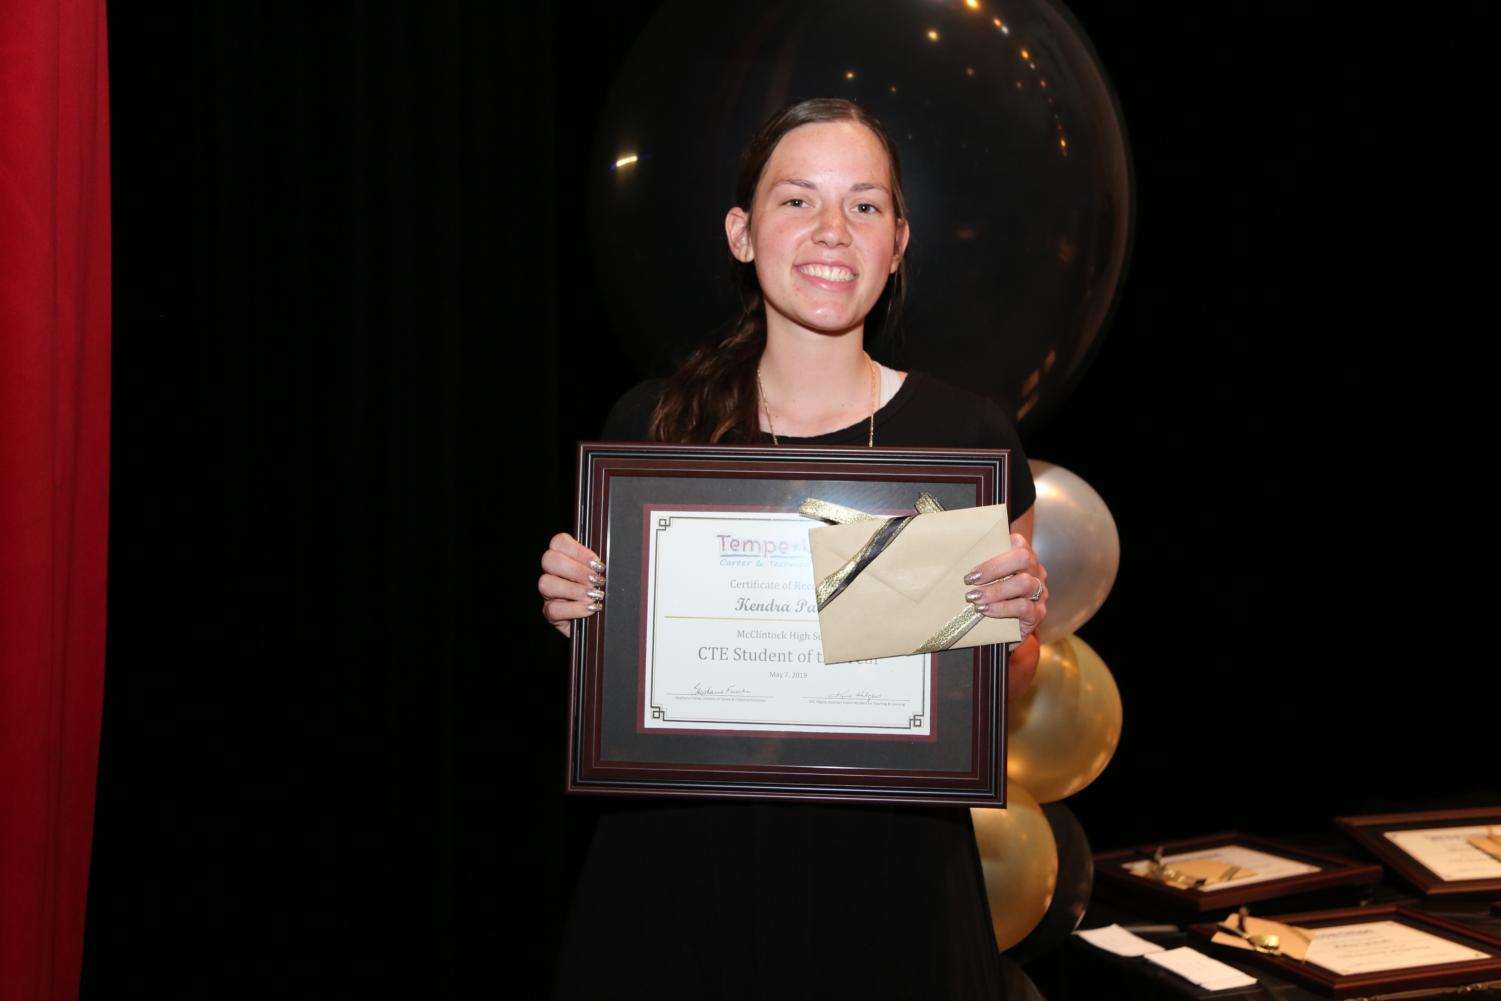 Kendra Parker was named the McClintock High School 2019 Student of the Year.